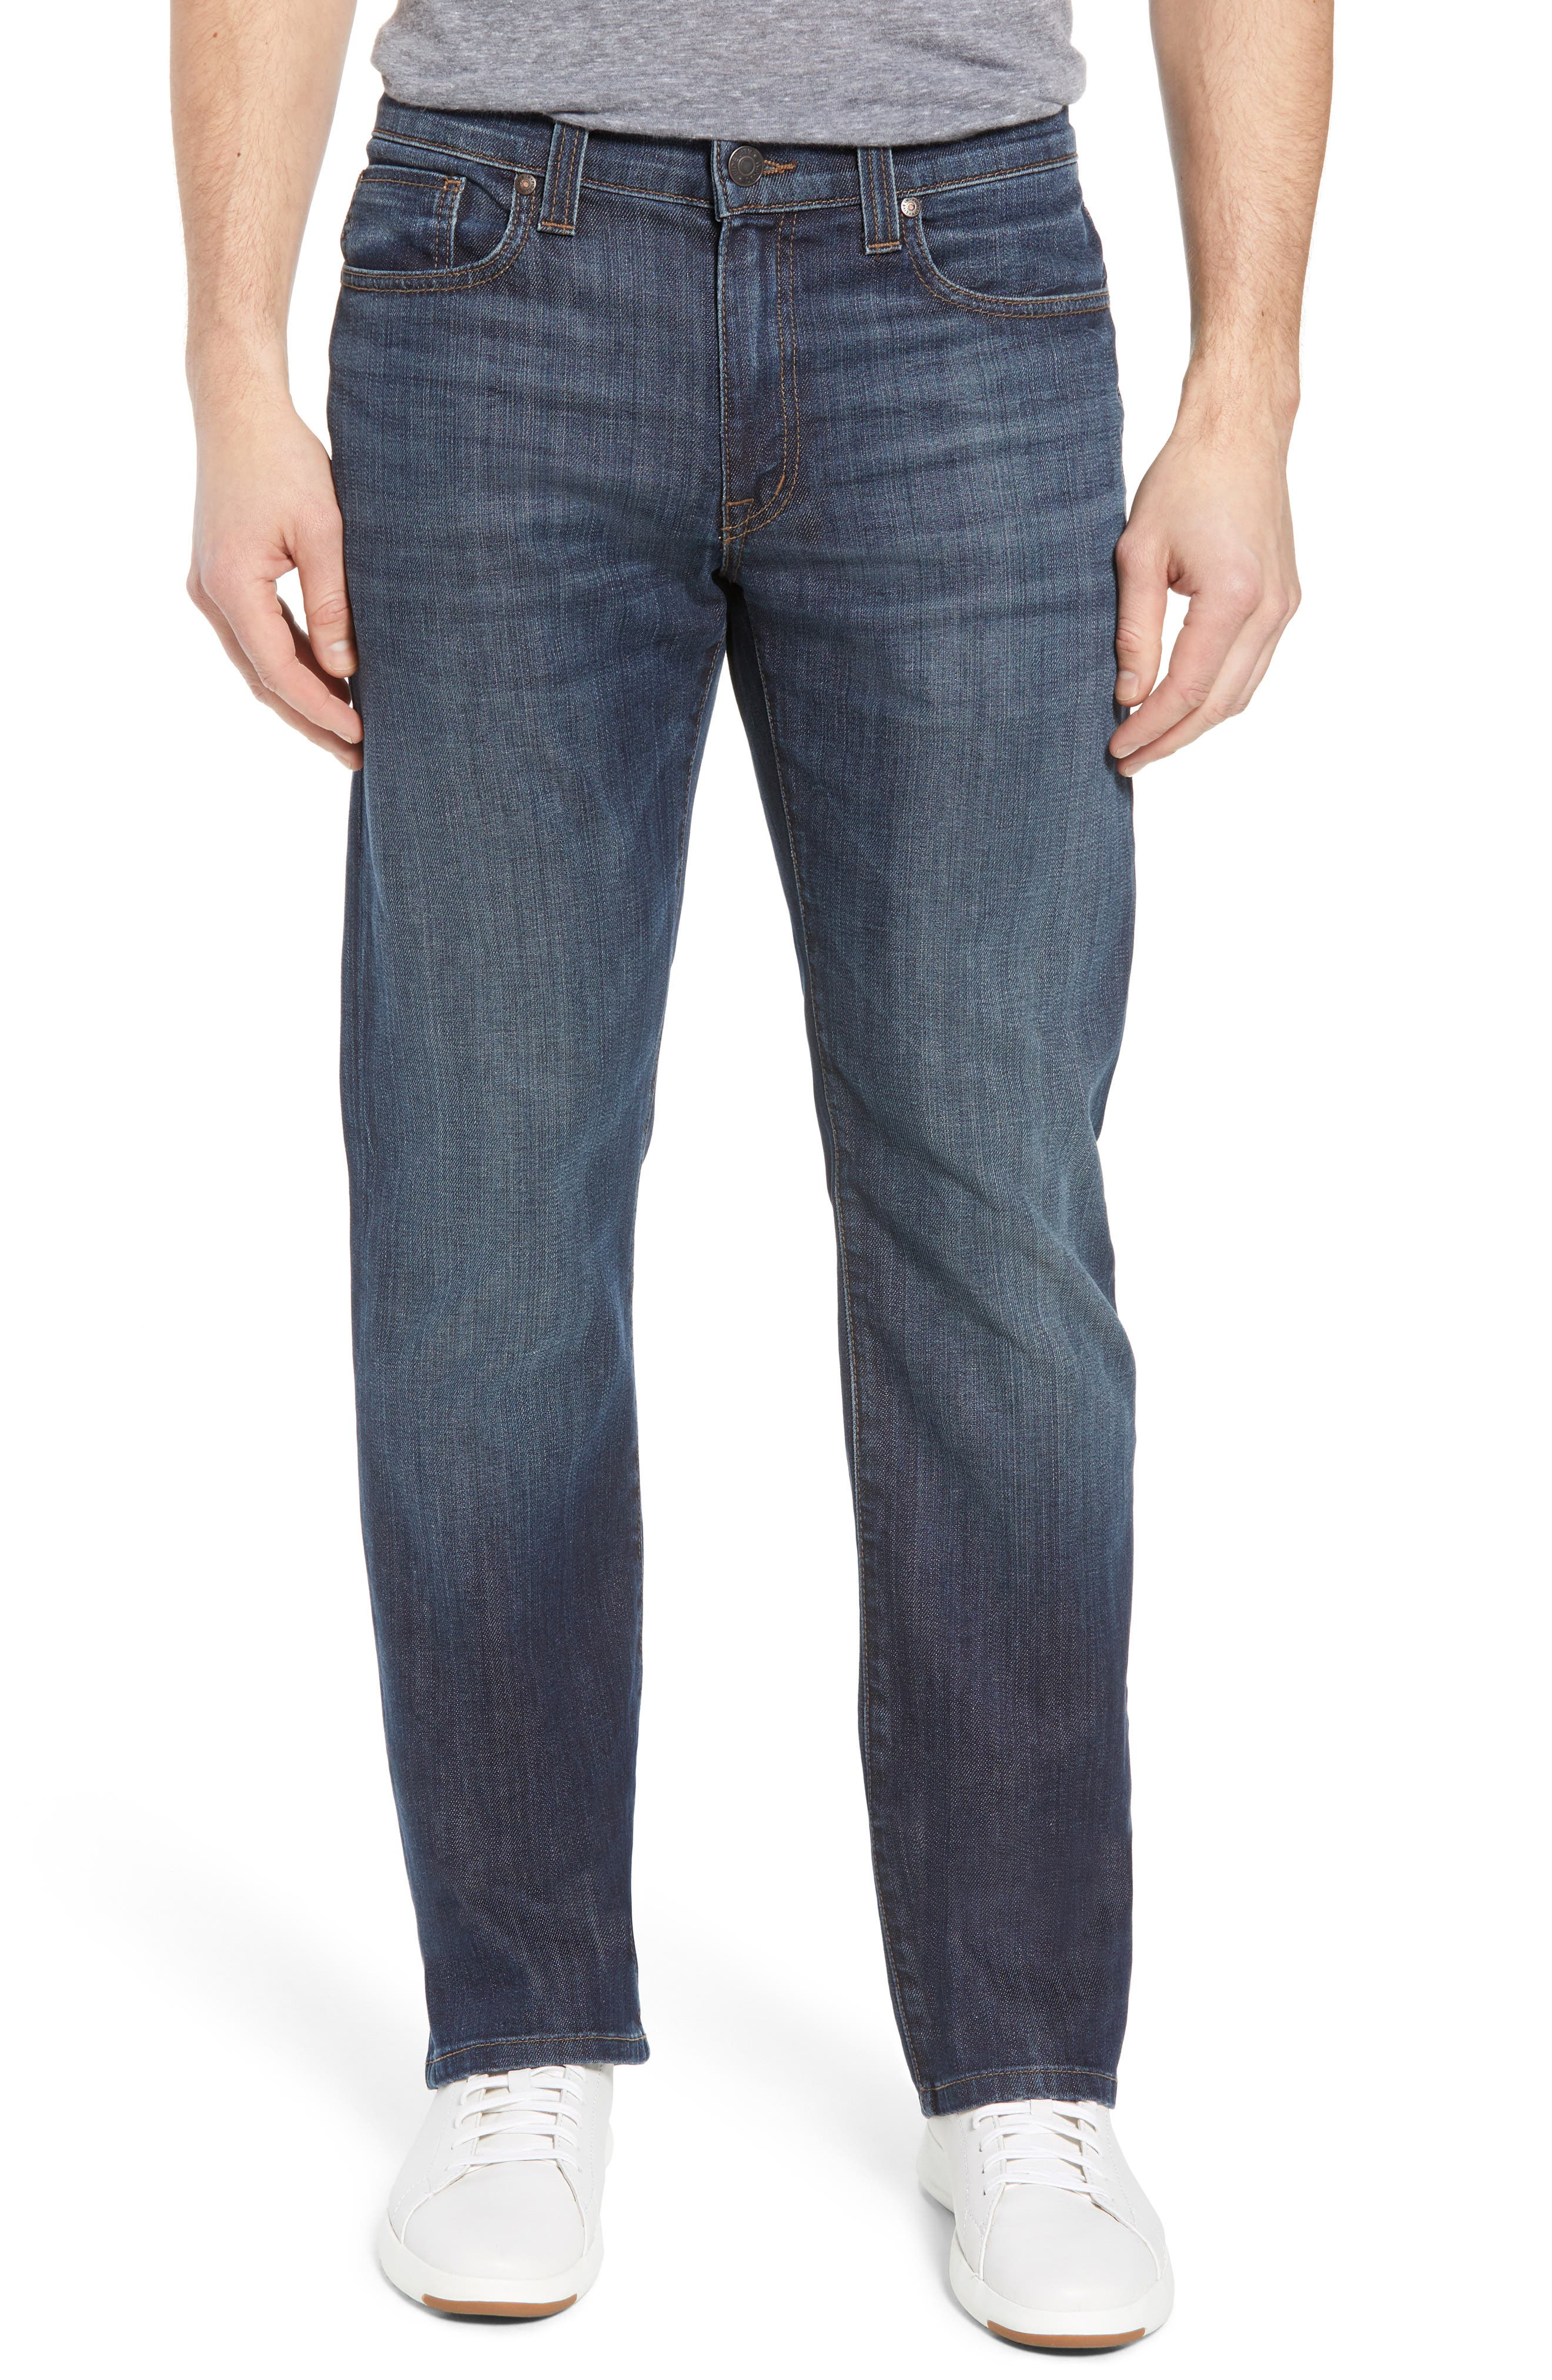 50-11 Relaxed Fit Jeans,                             Main thumbnail 1, color,                             Winwood Vintage